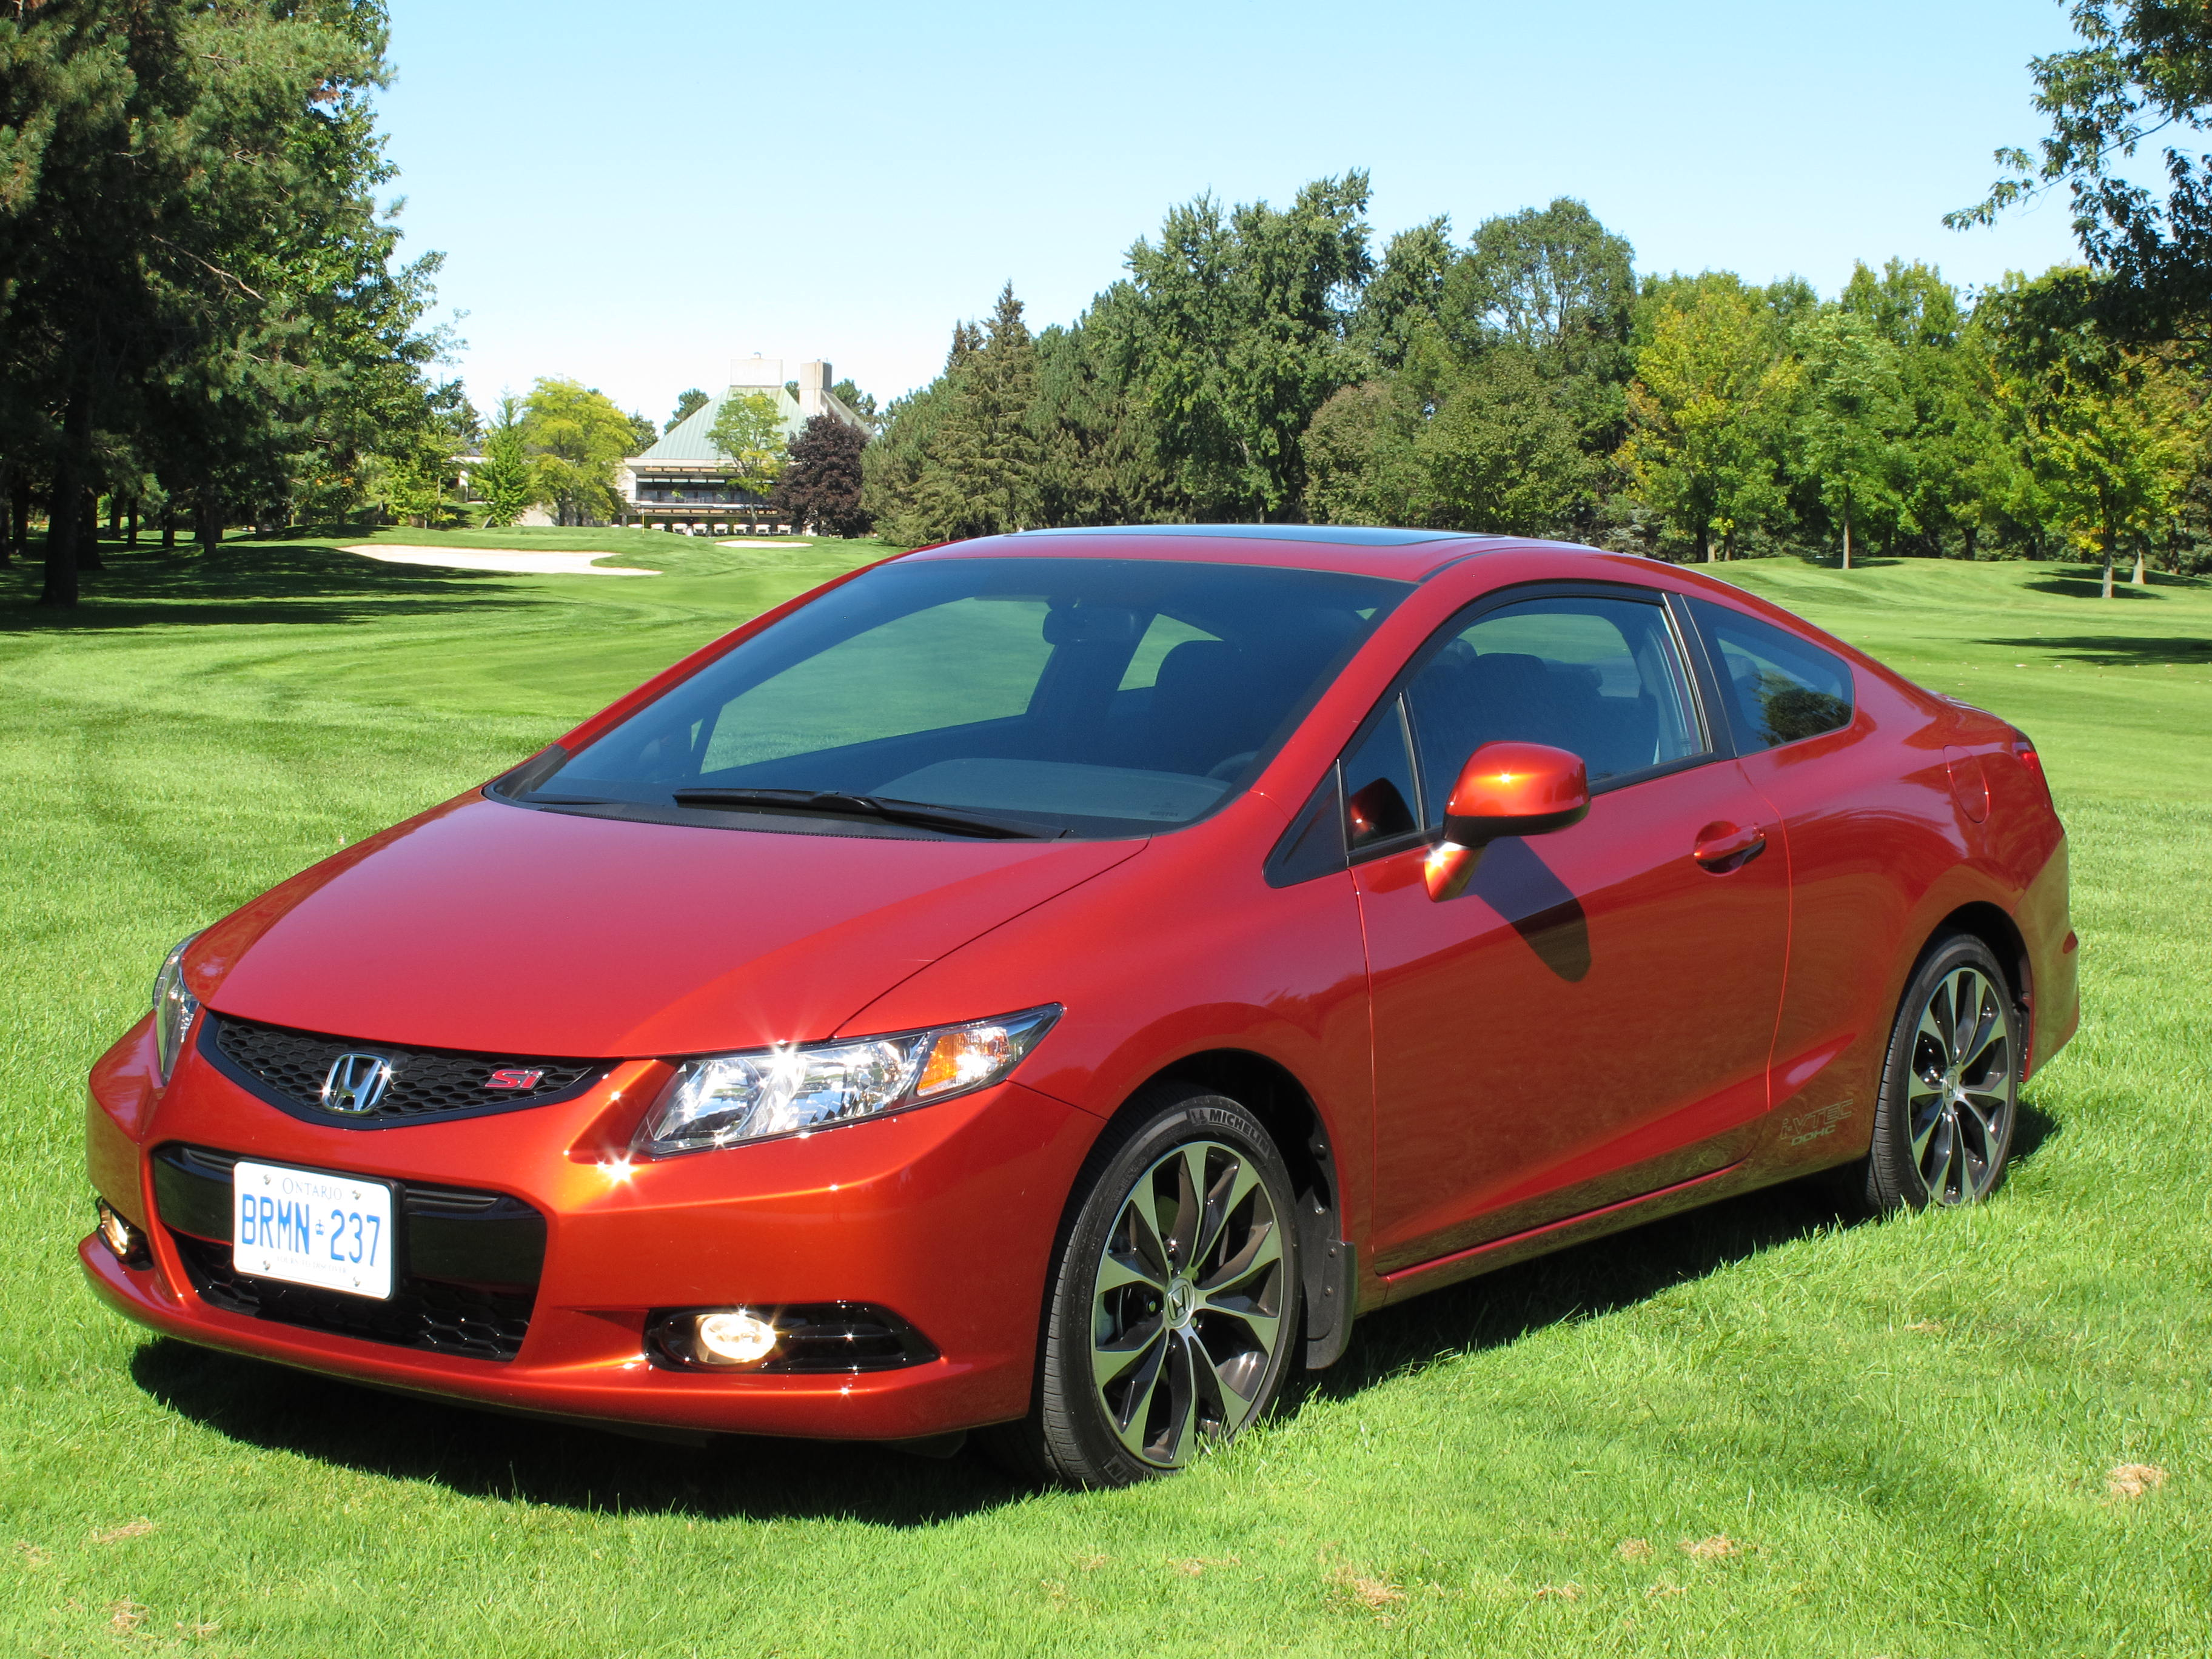 2013 honda civic si coupe review cars photos test drives and reviews canadian auto review. Black Bedroom Furniture Sets. Home Design Ideas